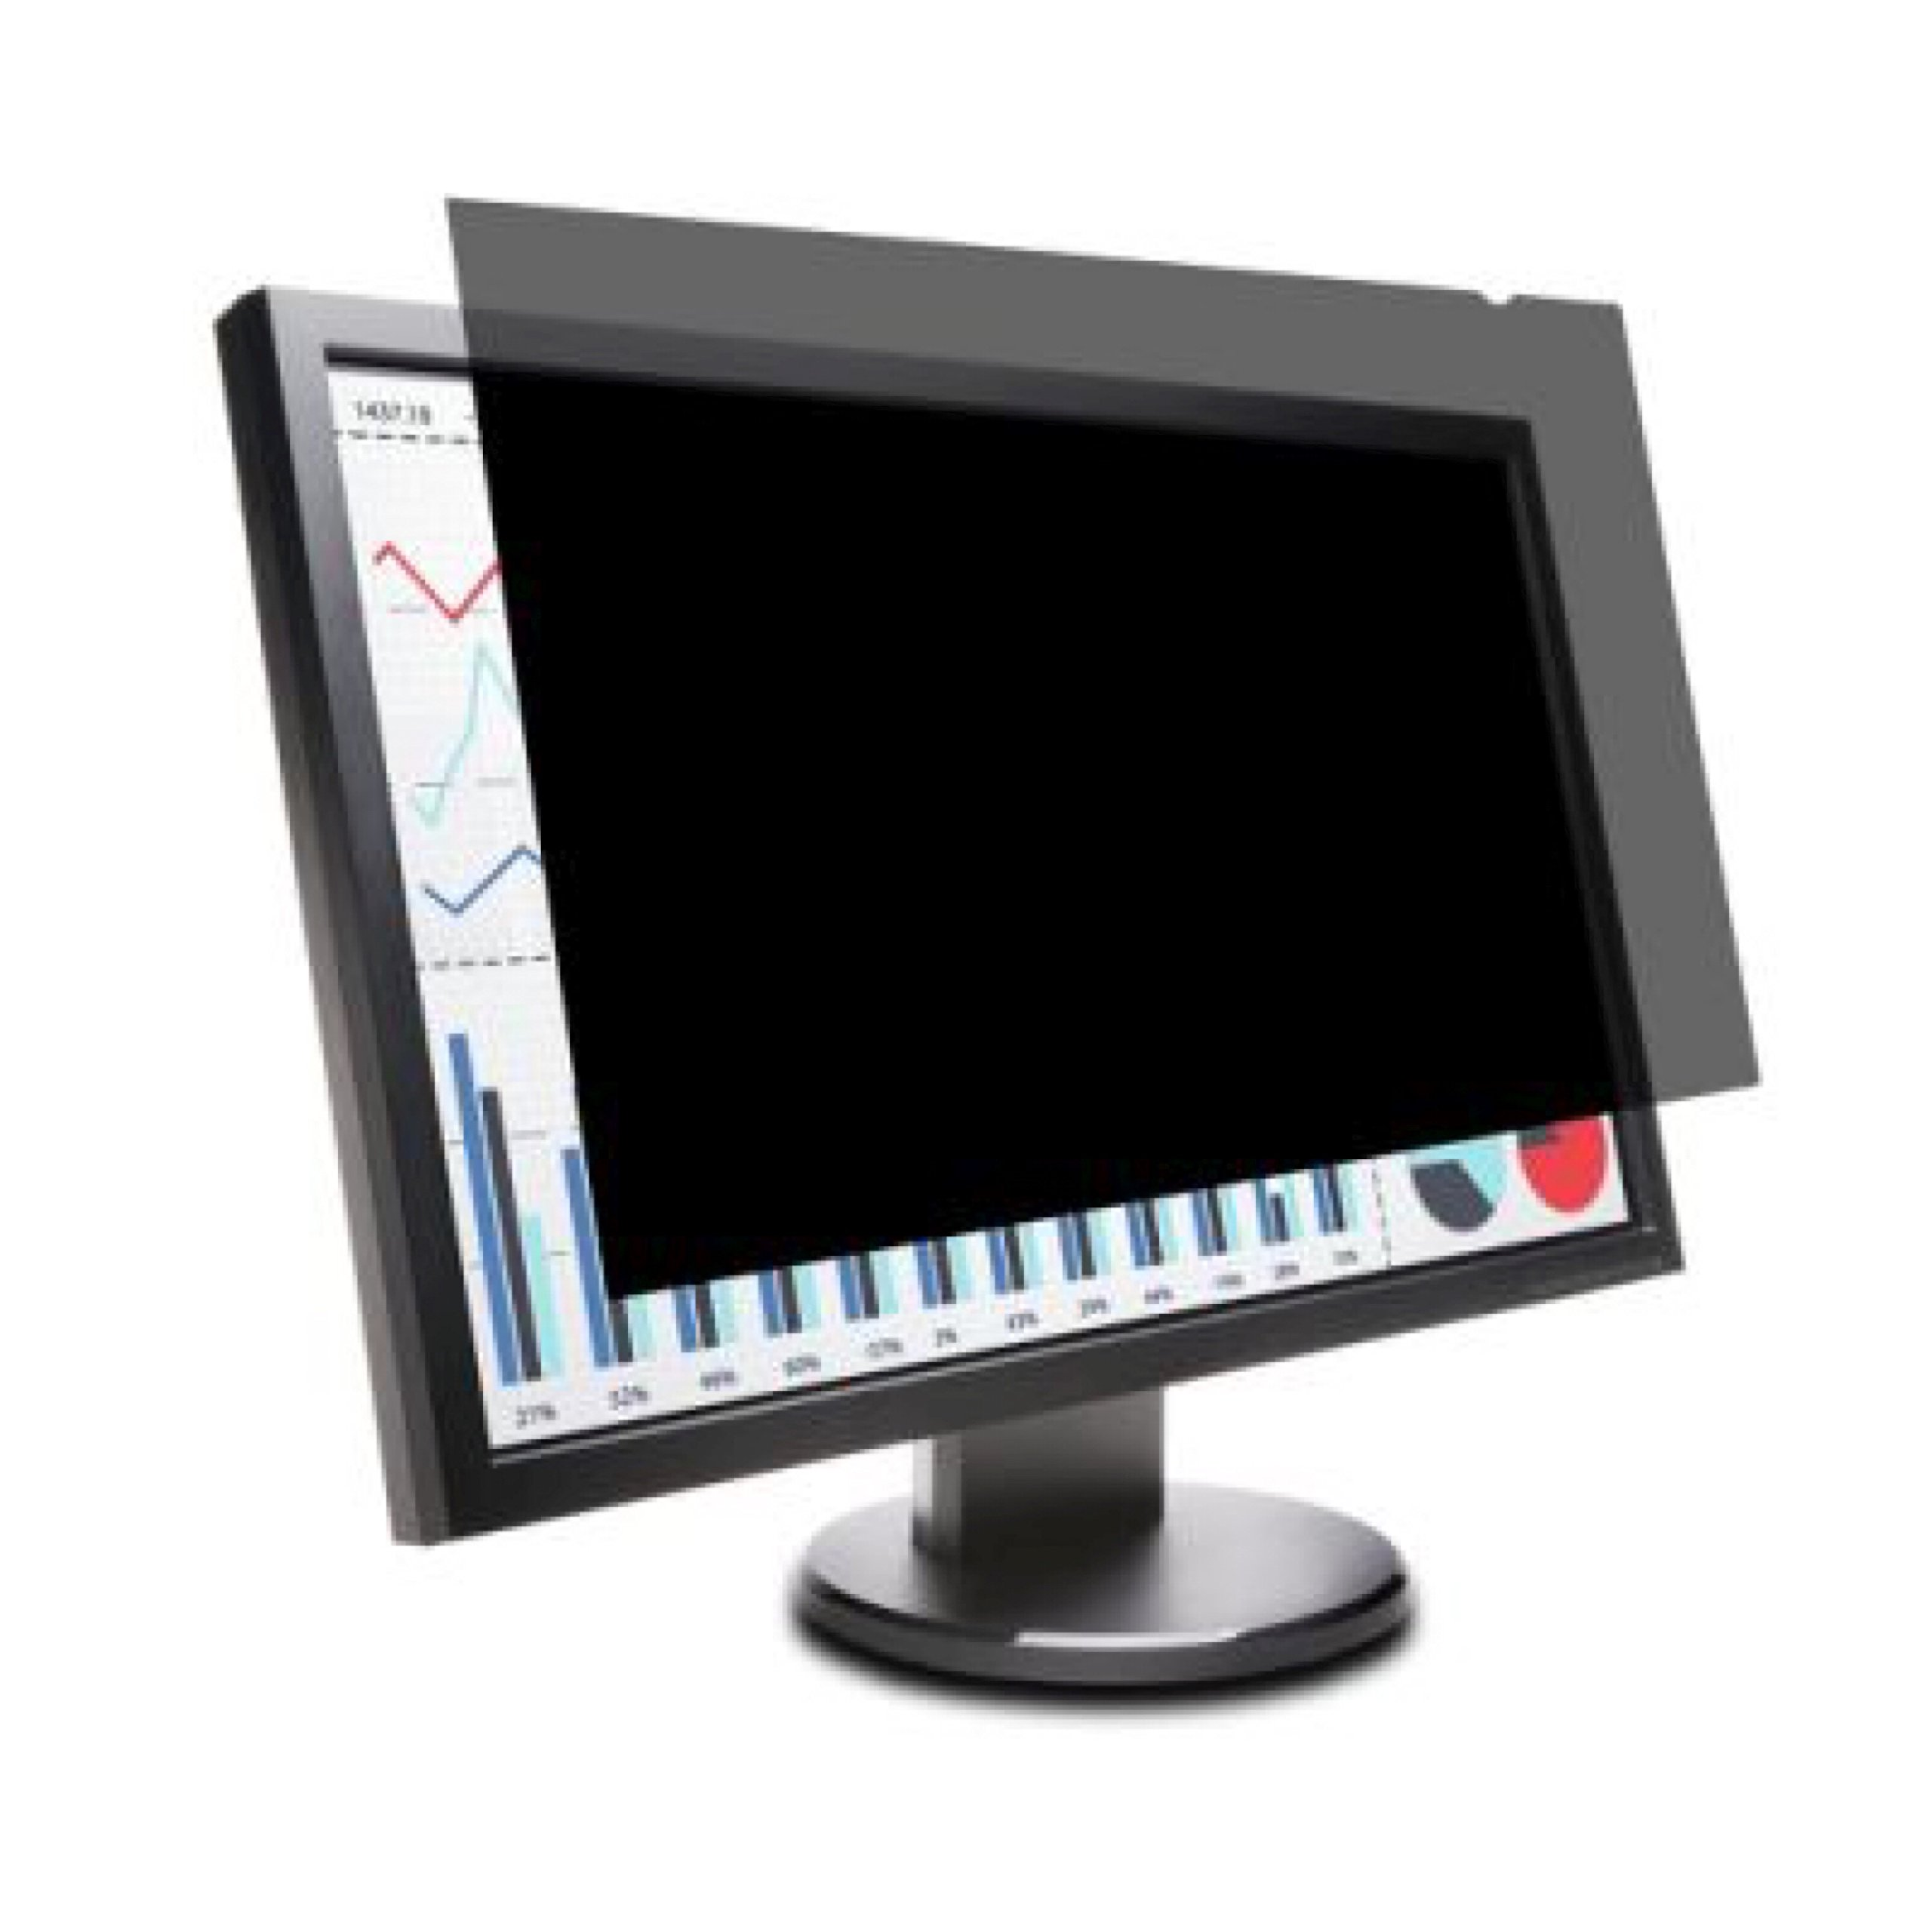 Privacy Protection Screen Filter (Diagonally Measured) for 20'' Widescreen Computer or Laptop Monitors (AP20.0W9) PLEASE MEASURE 2 TIMES CAREFULLY BEFORE PURCHASE!